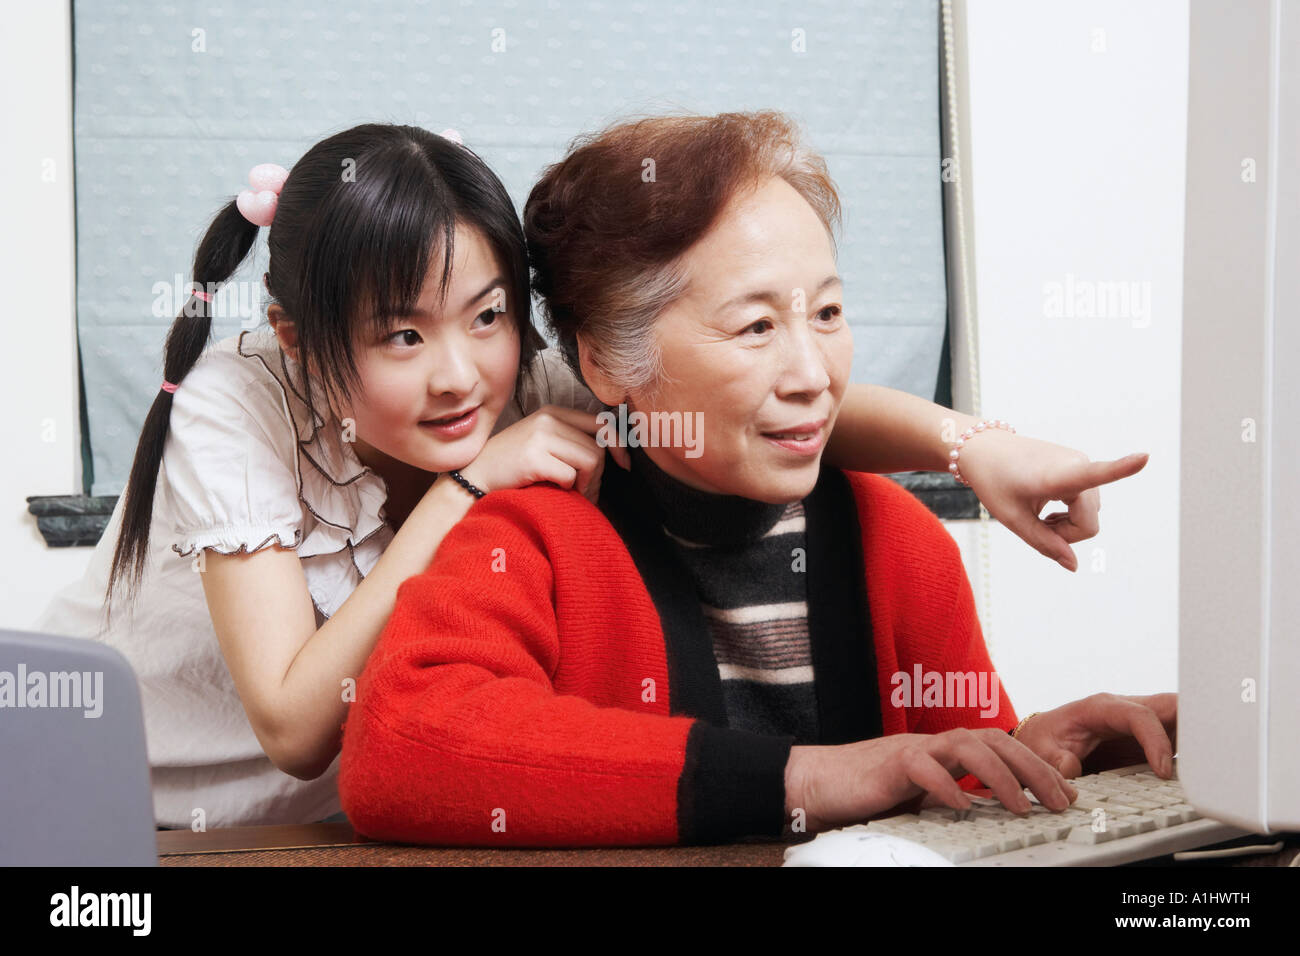 Close-up of a grandmother and her granddaughter using a computer - Stock Image